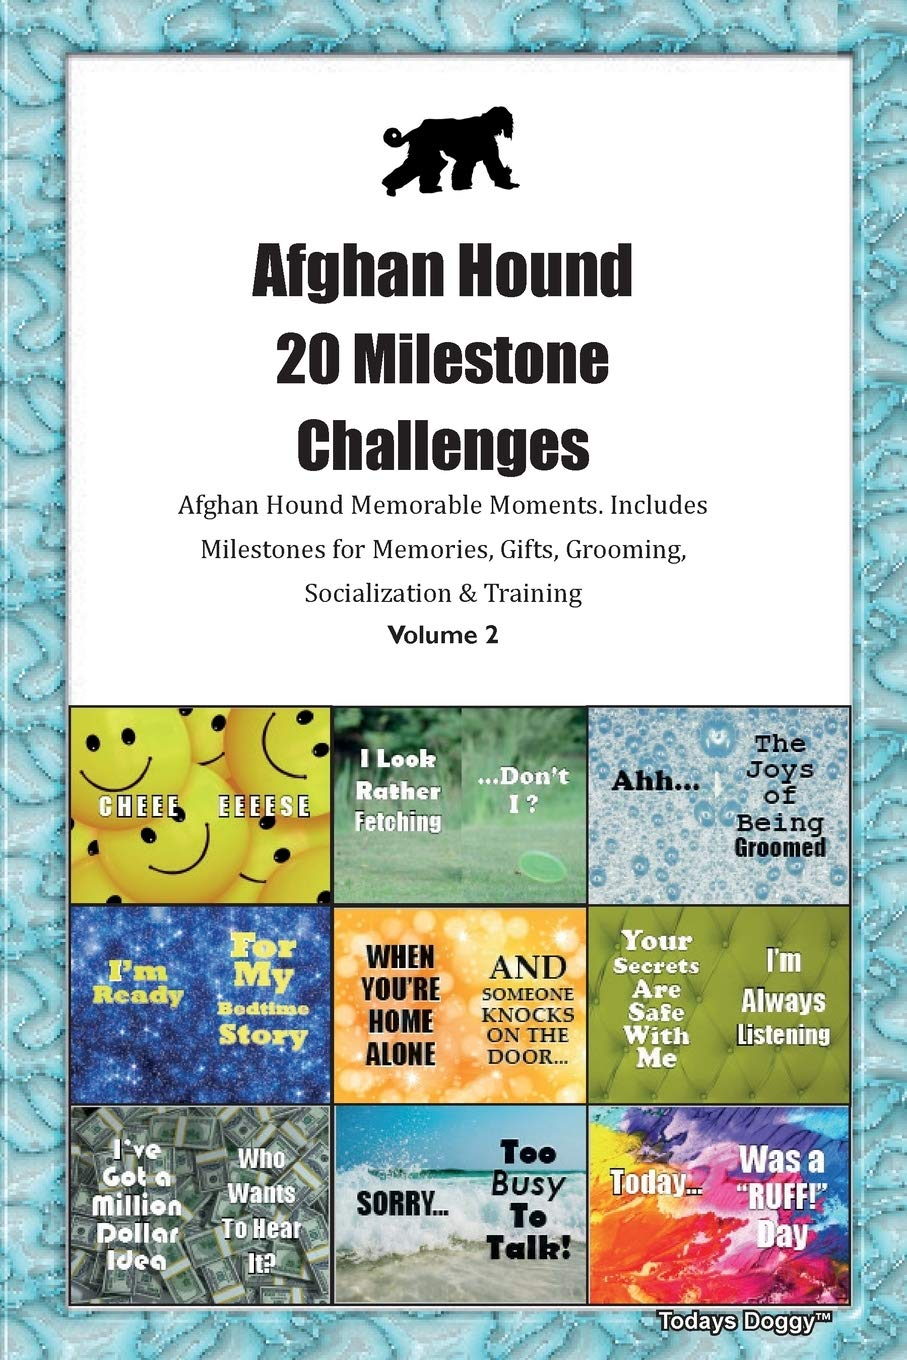 Afghan Hound 20 Milestone Challenges Afghan Hound Memorable Moments.Includes Milestones for Memories, Gifts, Grooming…